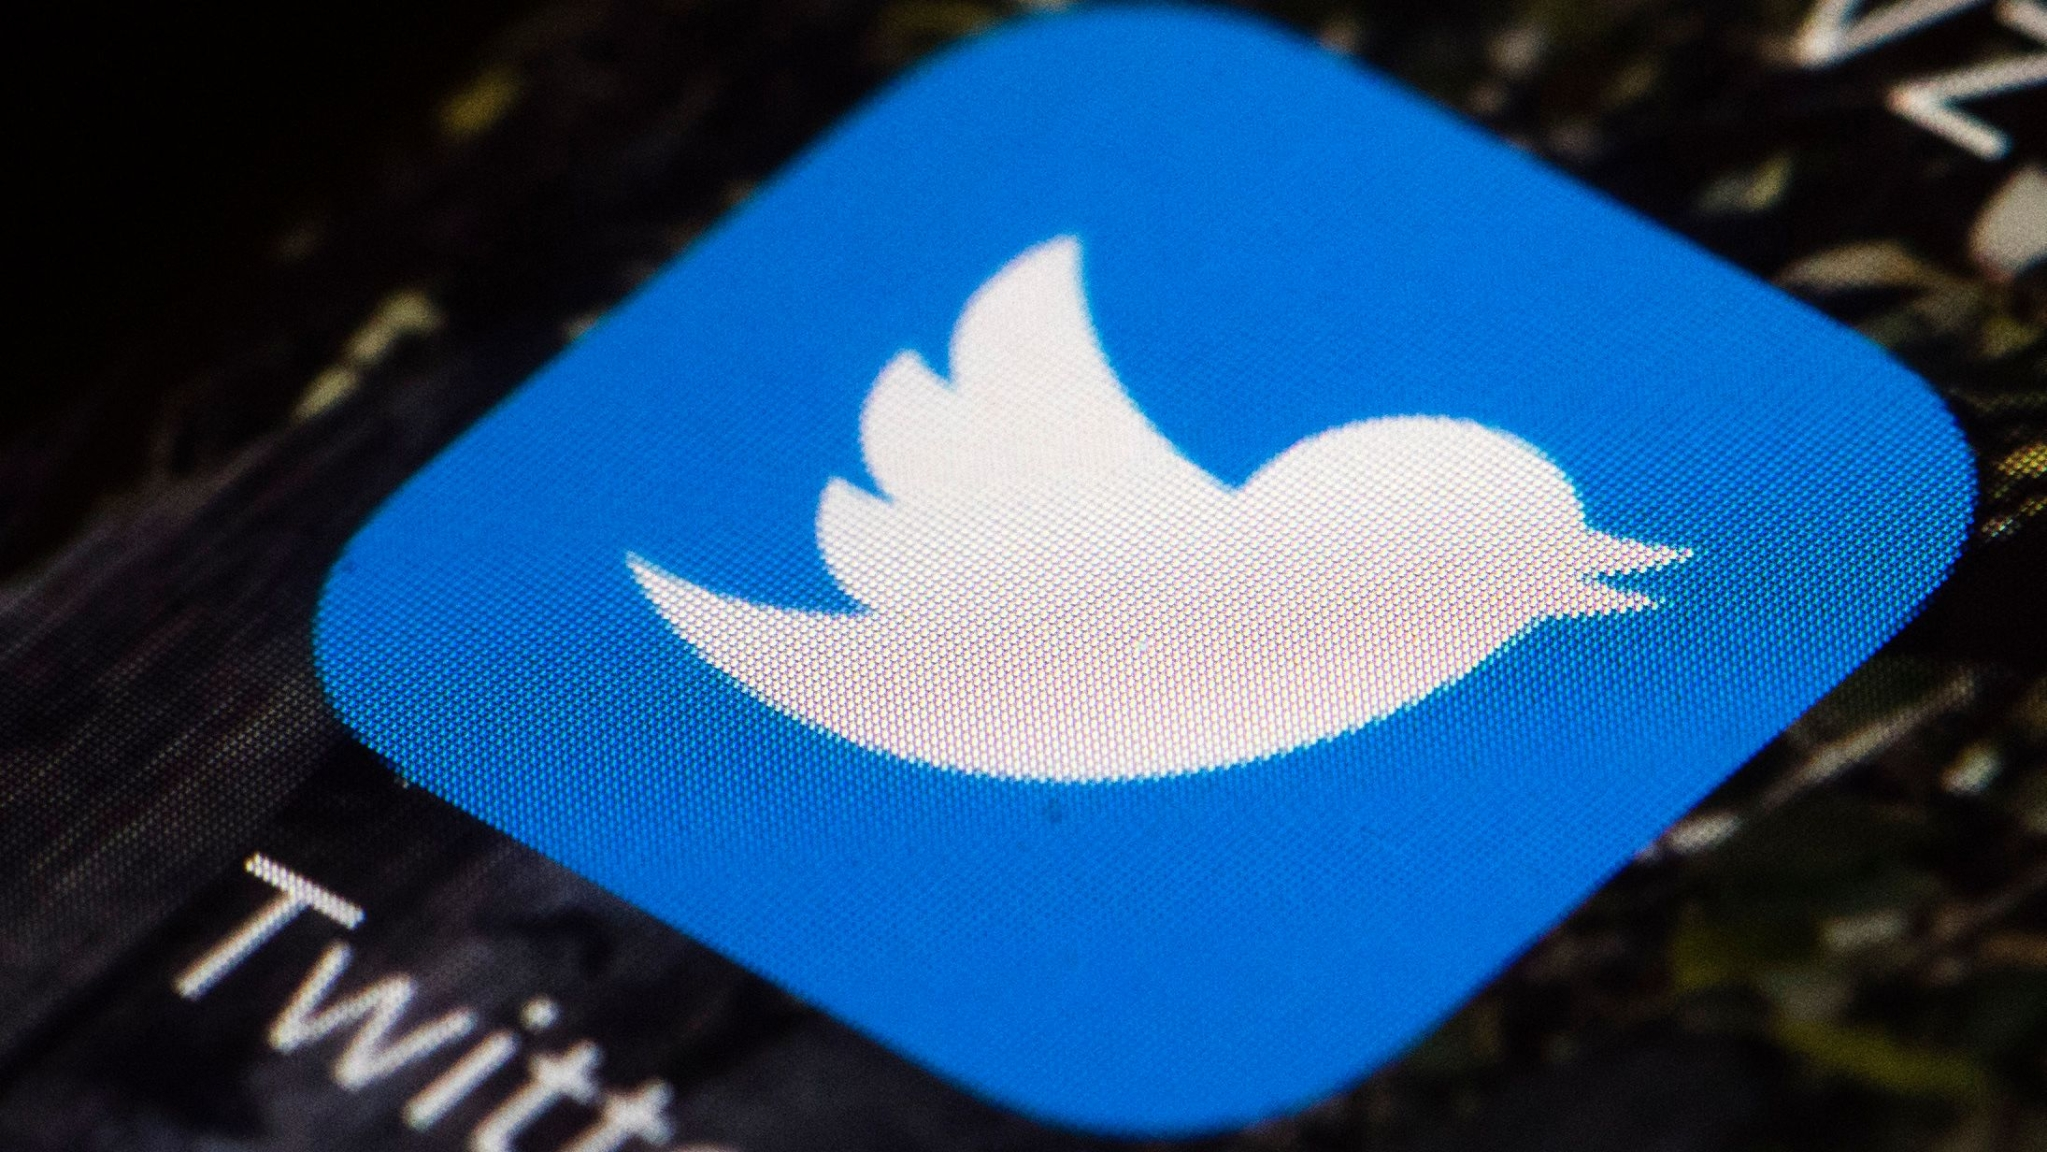 Twitter Says it Mistakenly Used Users' Security Data for Ads